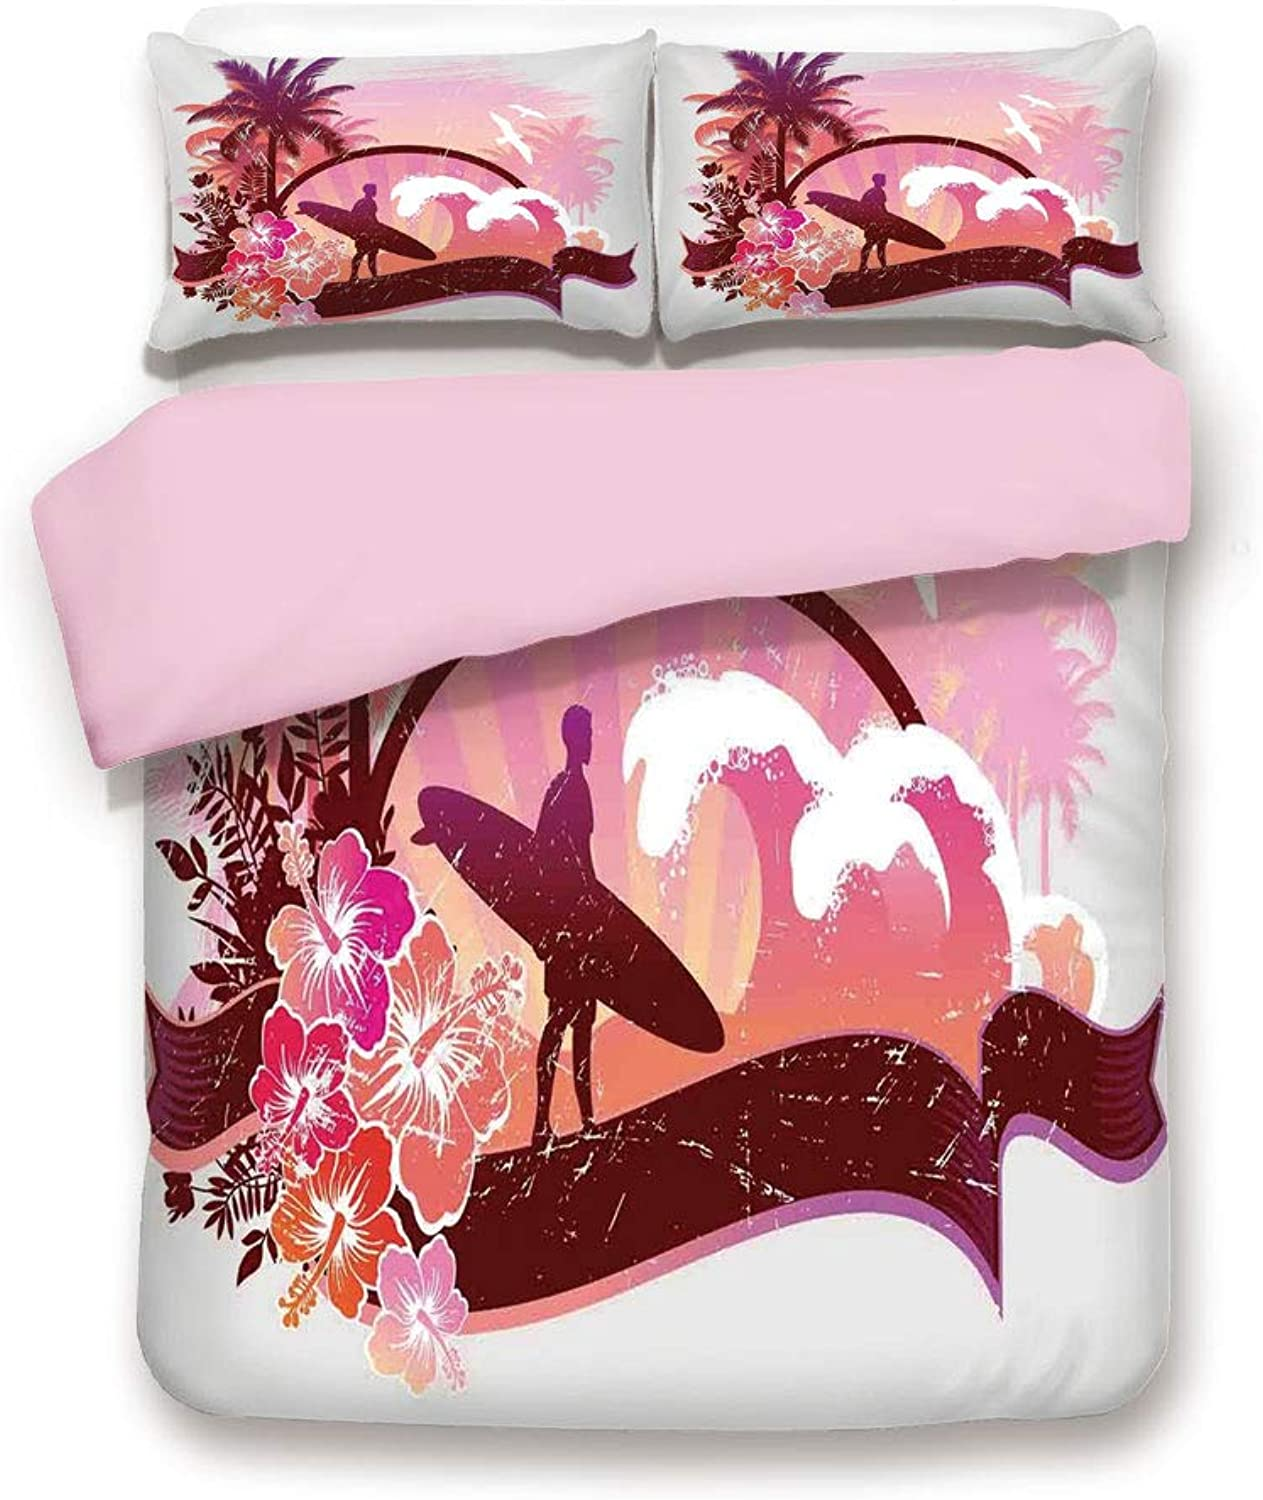 Pink Duvet Cover Set& xFF0F;FULL Size& xFF0F;Surfer on Tropical Beach Standing by the Ocean Challenging the Waves Digital Graphic& xFF0F;Decorative 3 Piece Bedding Set with 2 Pillow Sham& xFF0F;Best Gift For Girls Women& xFF0F;Purple P